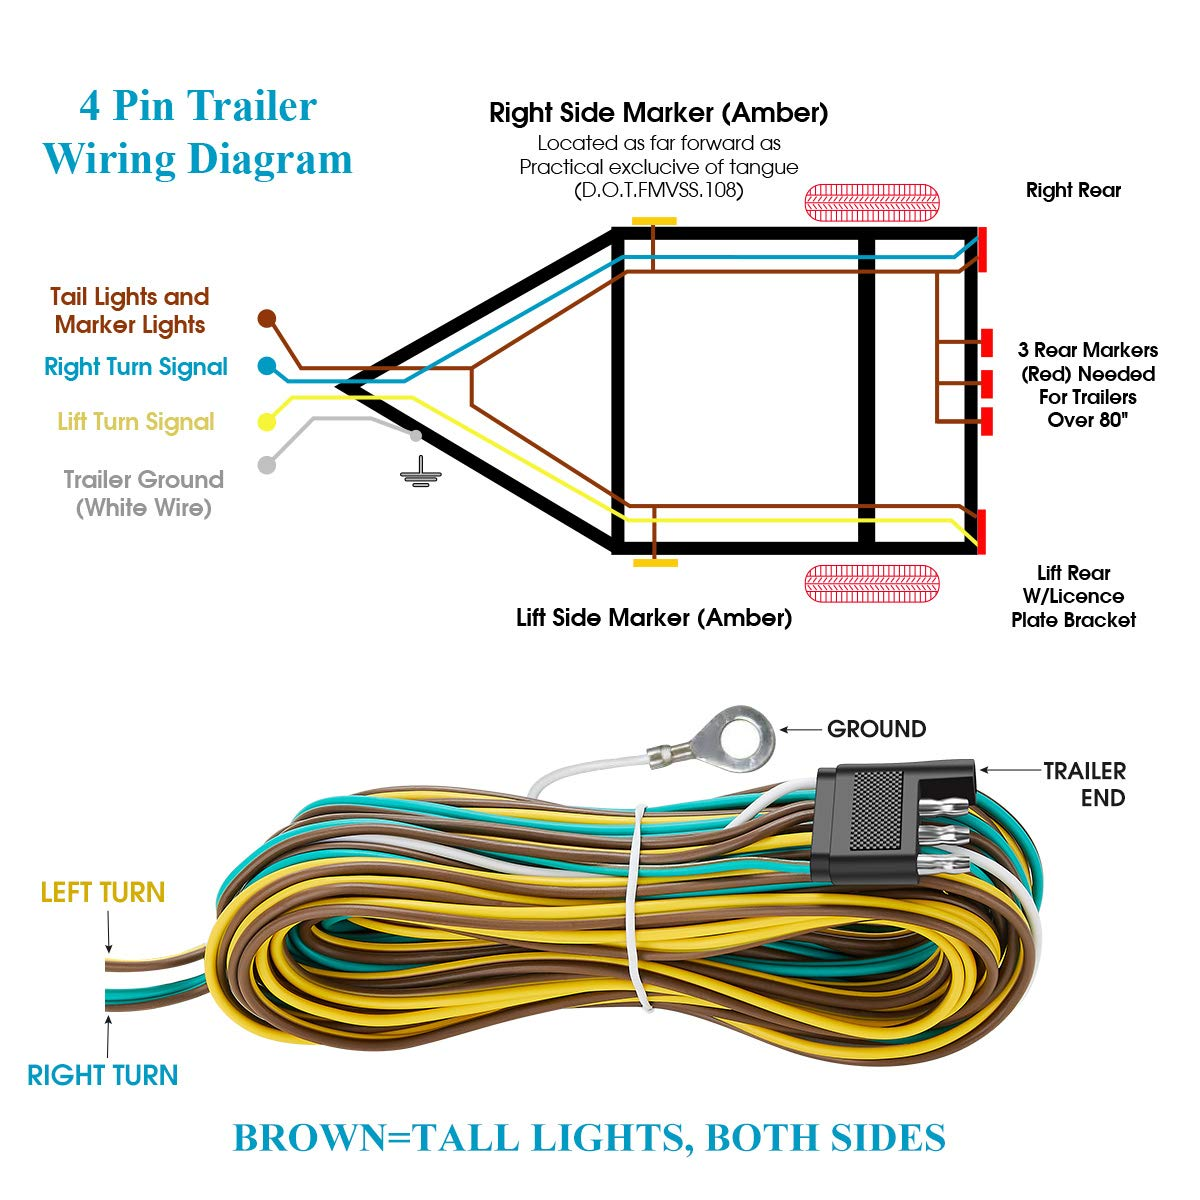 Way Trailer Light Wiring Diagram on 7-wire trailer wiring diagram, 5 wire trailer wiring diagram, boat trailer wiring diagram, trailer tail light wiring diagram, 5-way trailer wiring diagram, 4 pin trailer diagram, utility trailer wiring diagram, 7-way trailer wiring diagram,